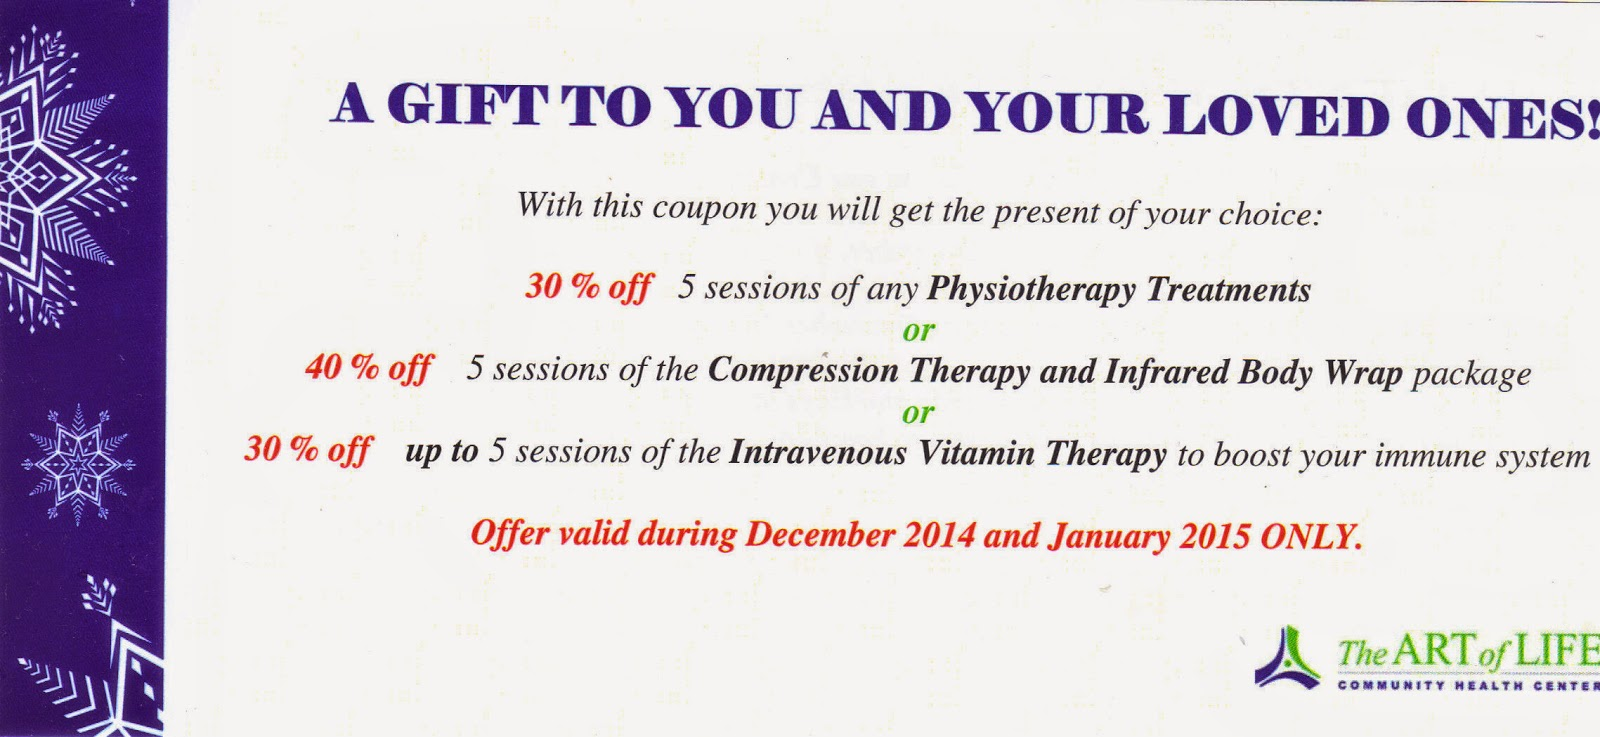 Winter Holiday Discount Coupon December 2014-January 2015: Art of Life Community Health Centre